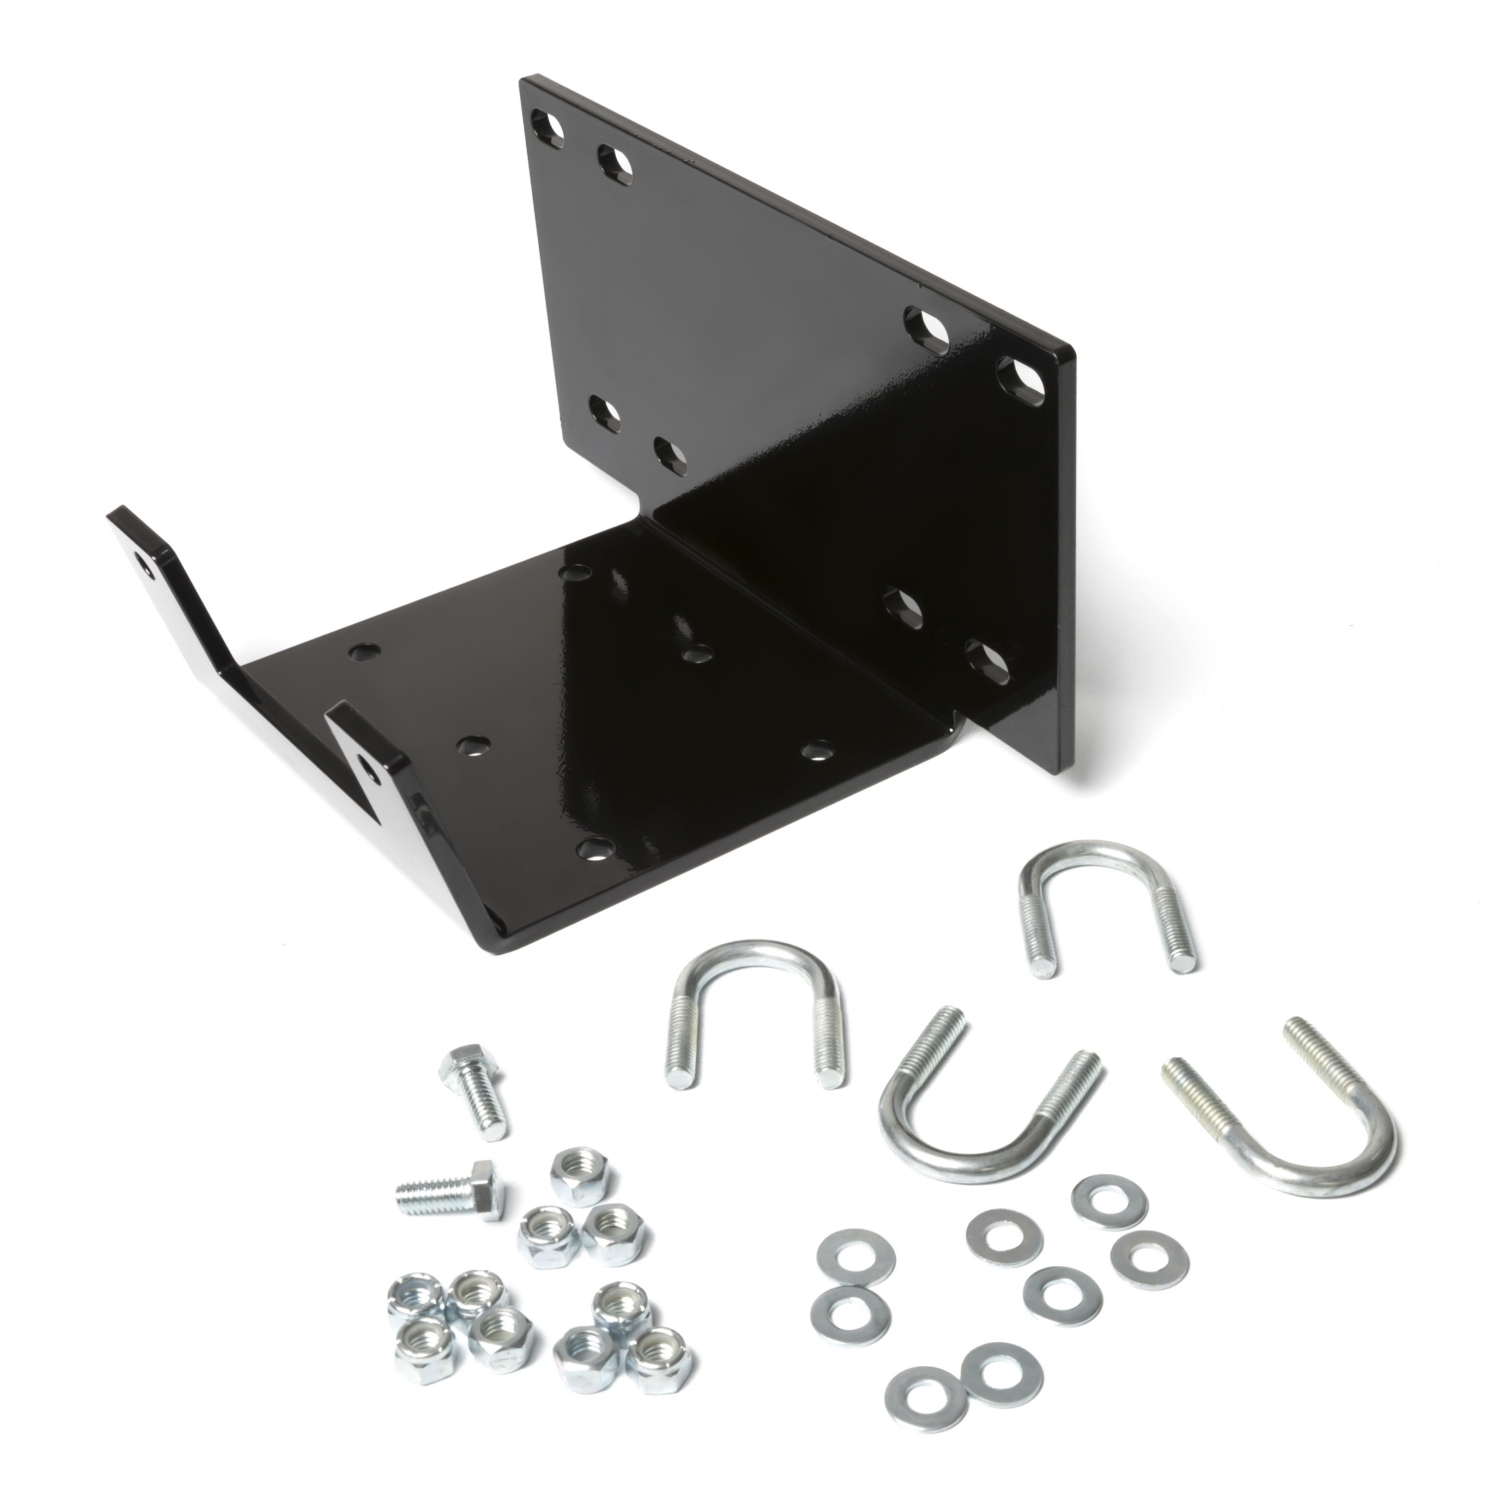 hight resolution of fuse atv winch mount kit 177042